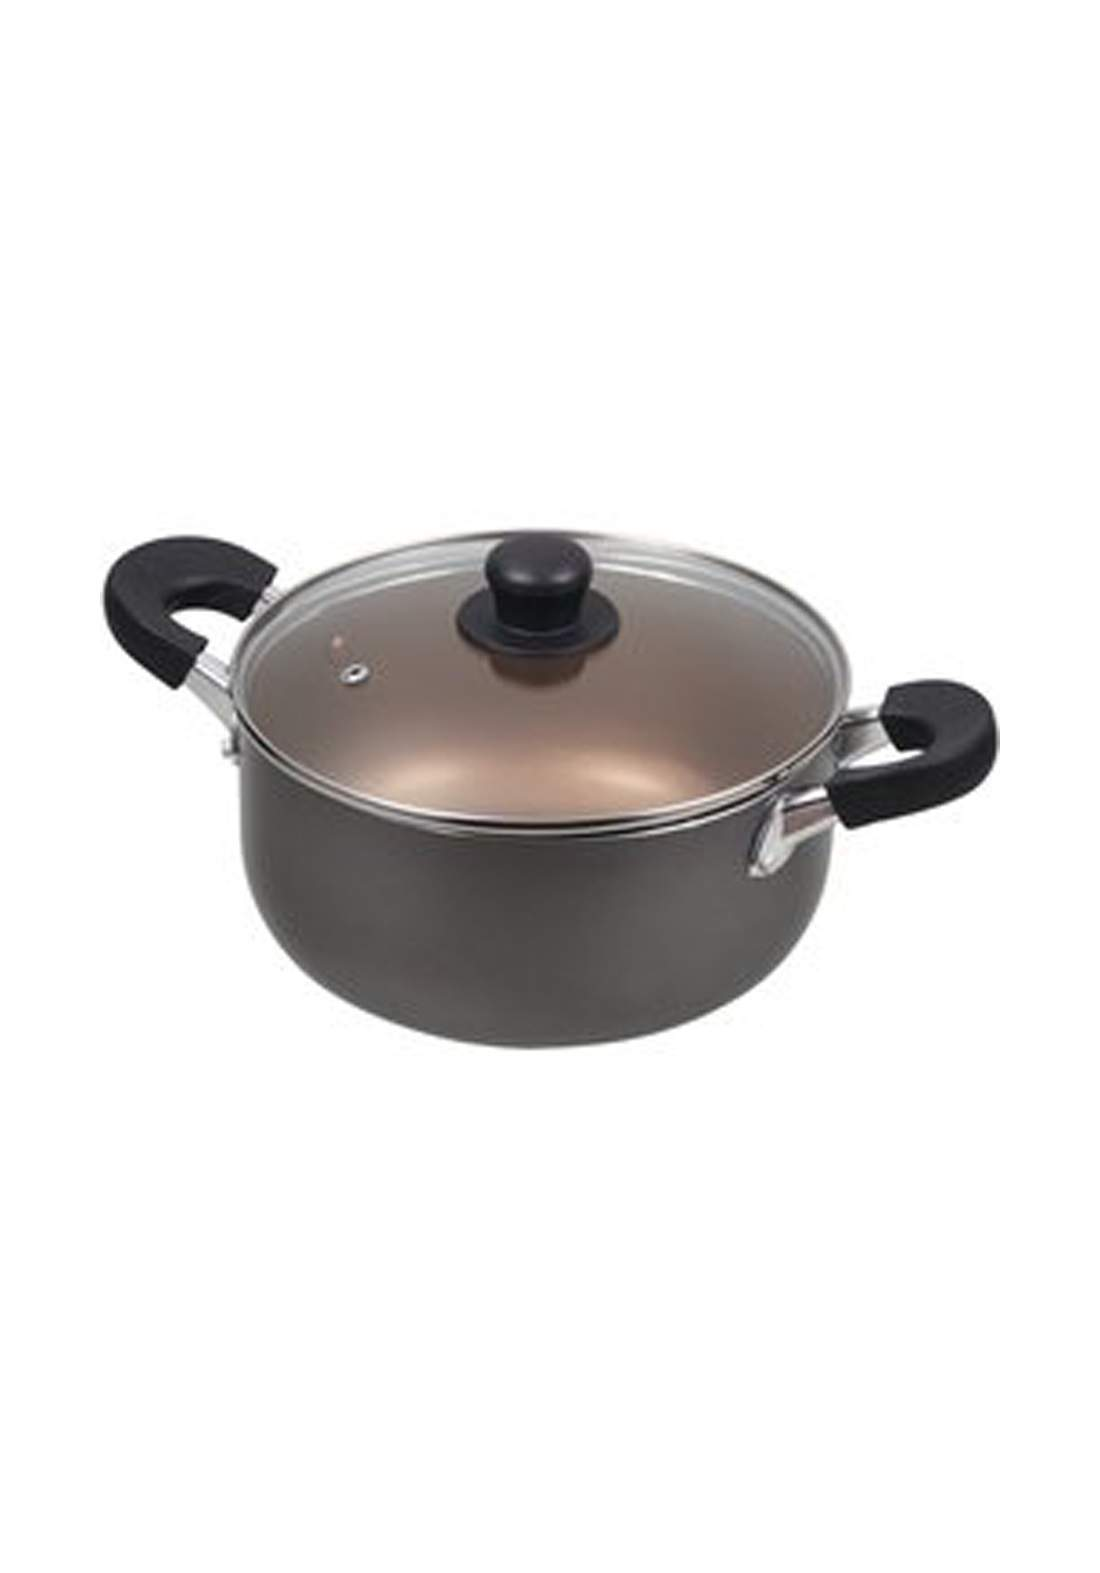 Pearl Metal HB-8014 Dinners Fluorine-processed two-handed pan with glass lid 22cm قدر طعام